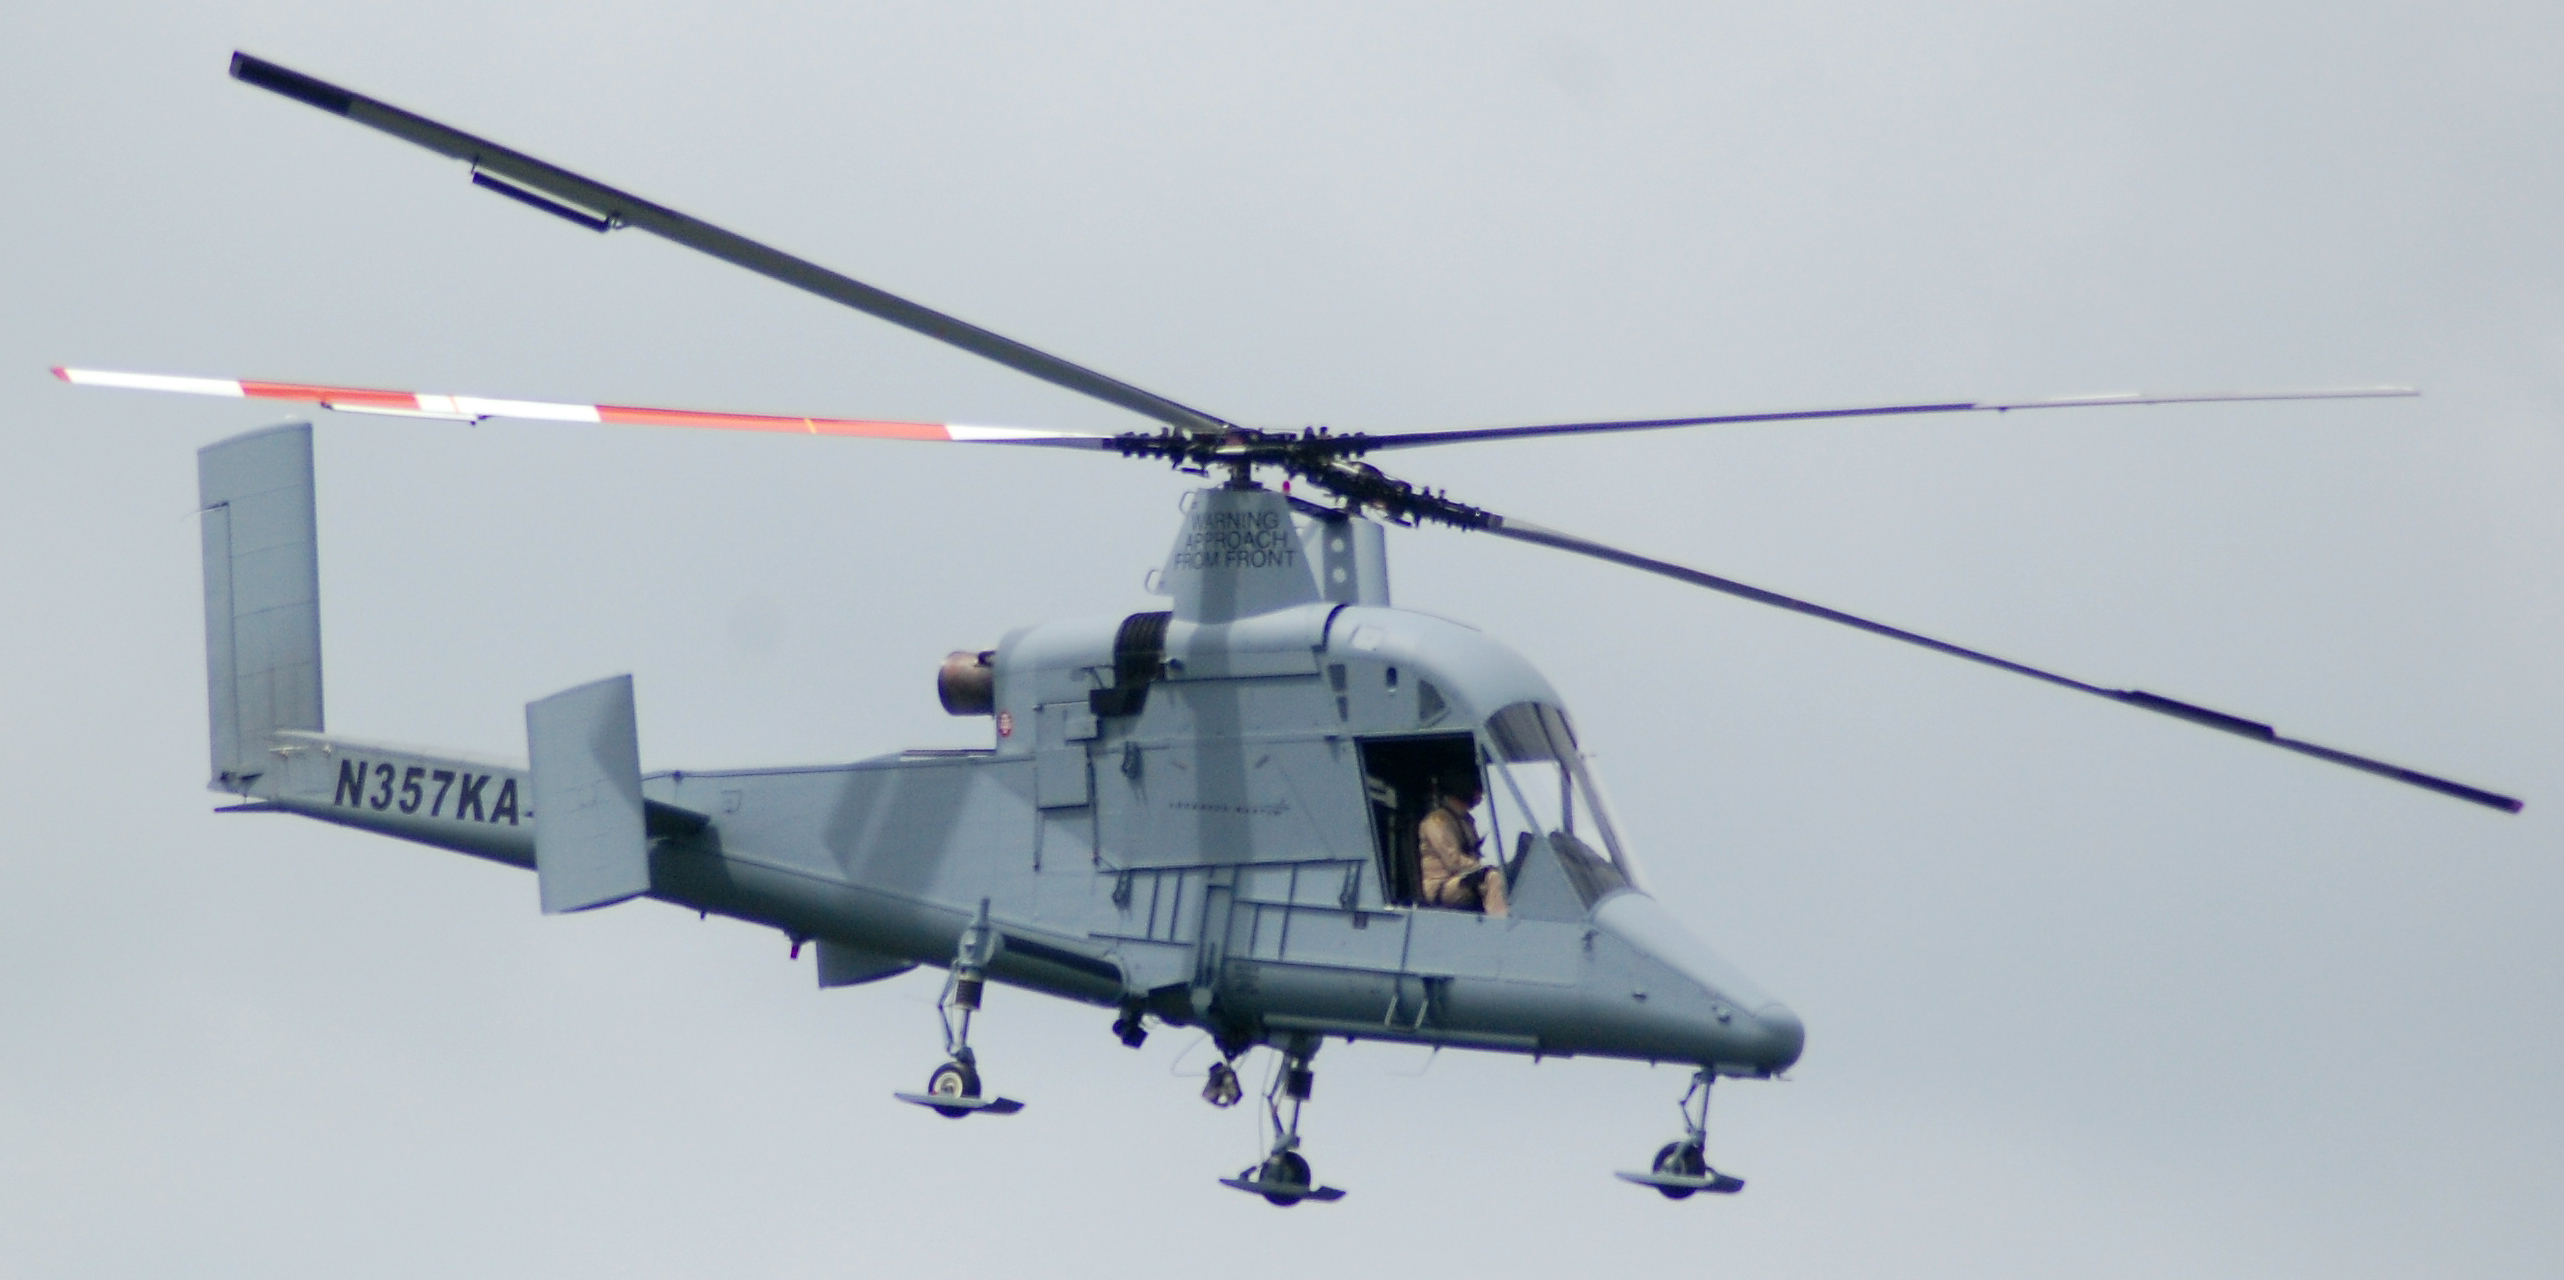 Lockheed Martin Delivers Unmanned K Max Helicopter for Evaluation   Defense News Aviation ...